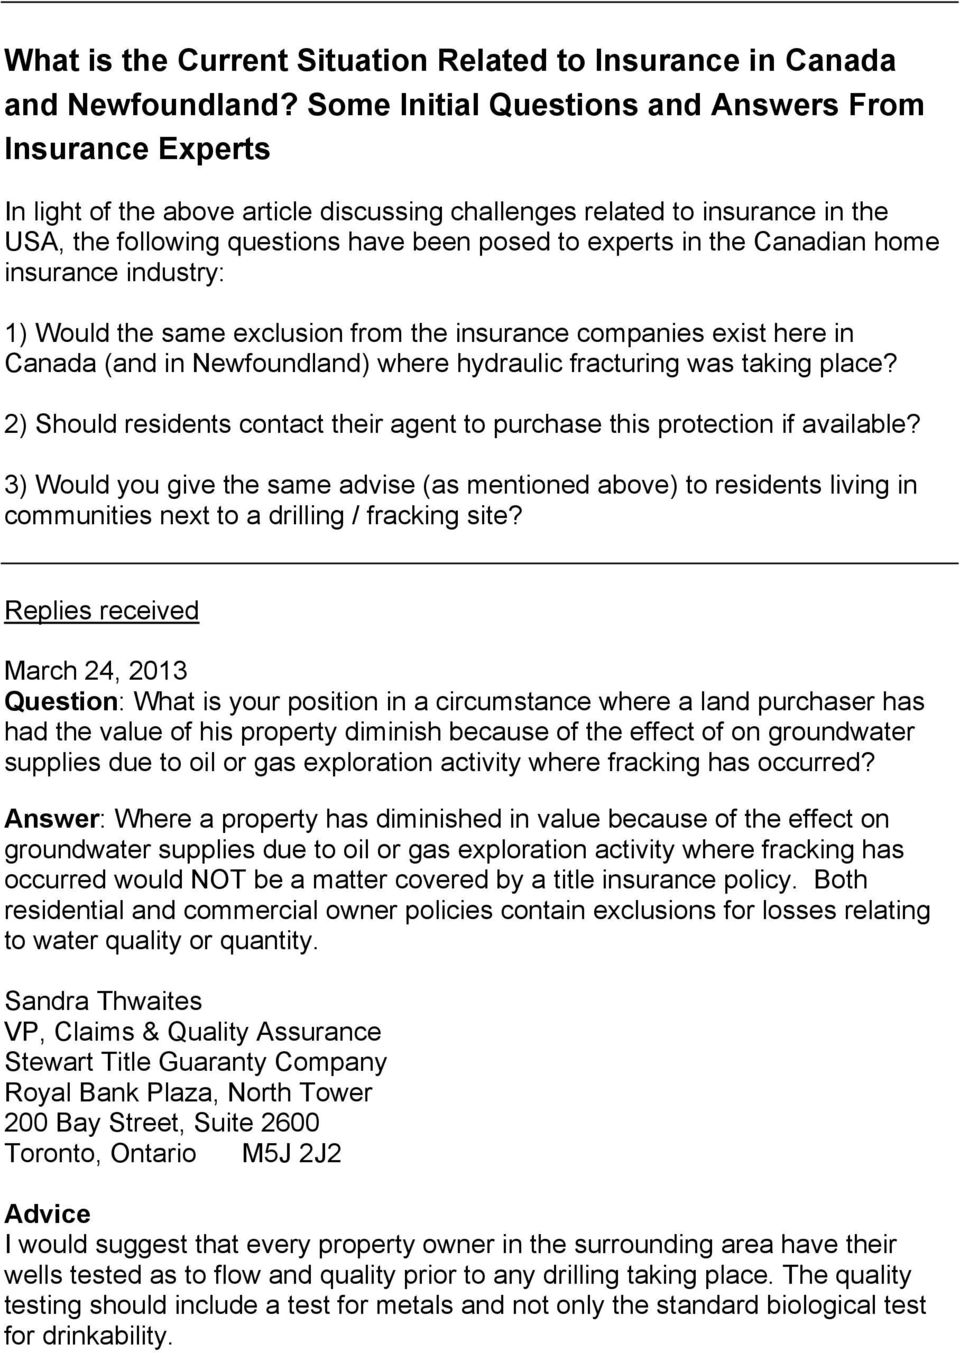 the Canadian home insurance industry: 1) Would the same exclusion from the insurance companies exist here in Canada (and in Newfoundland) where hydraulic fracturing was taking place?